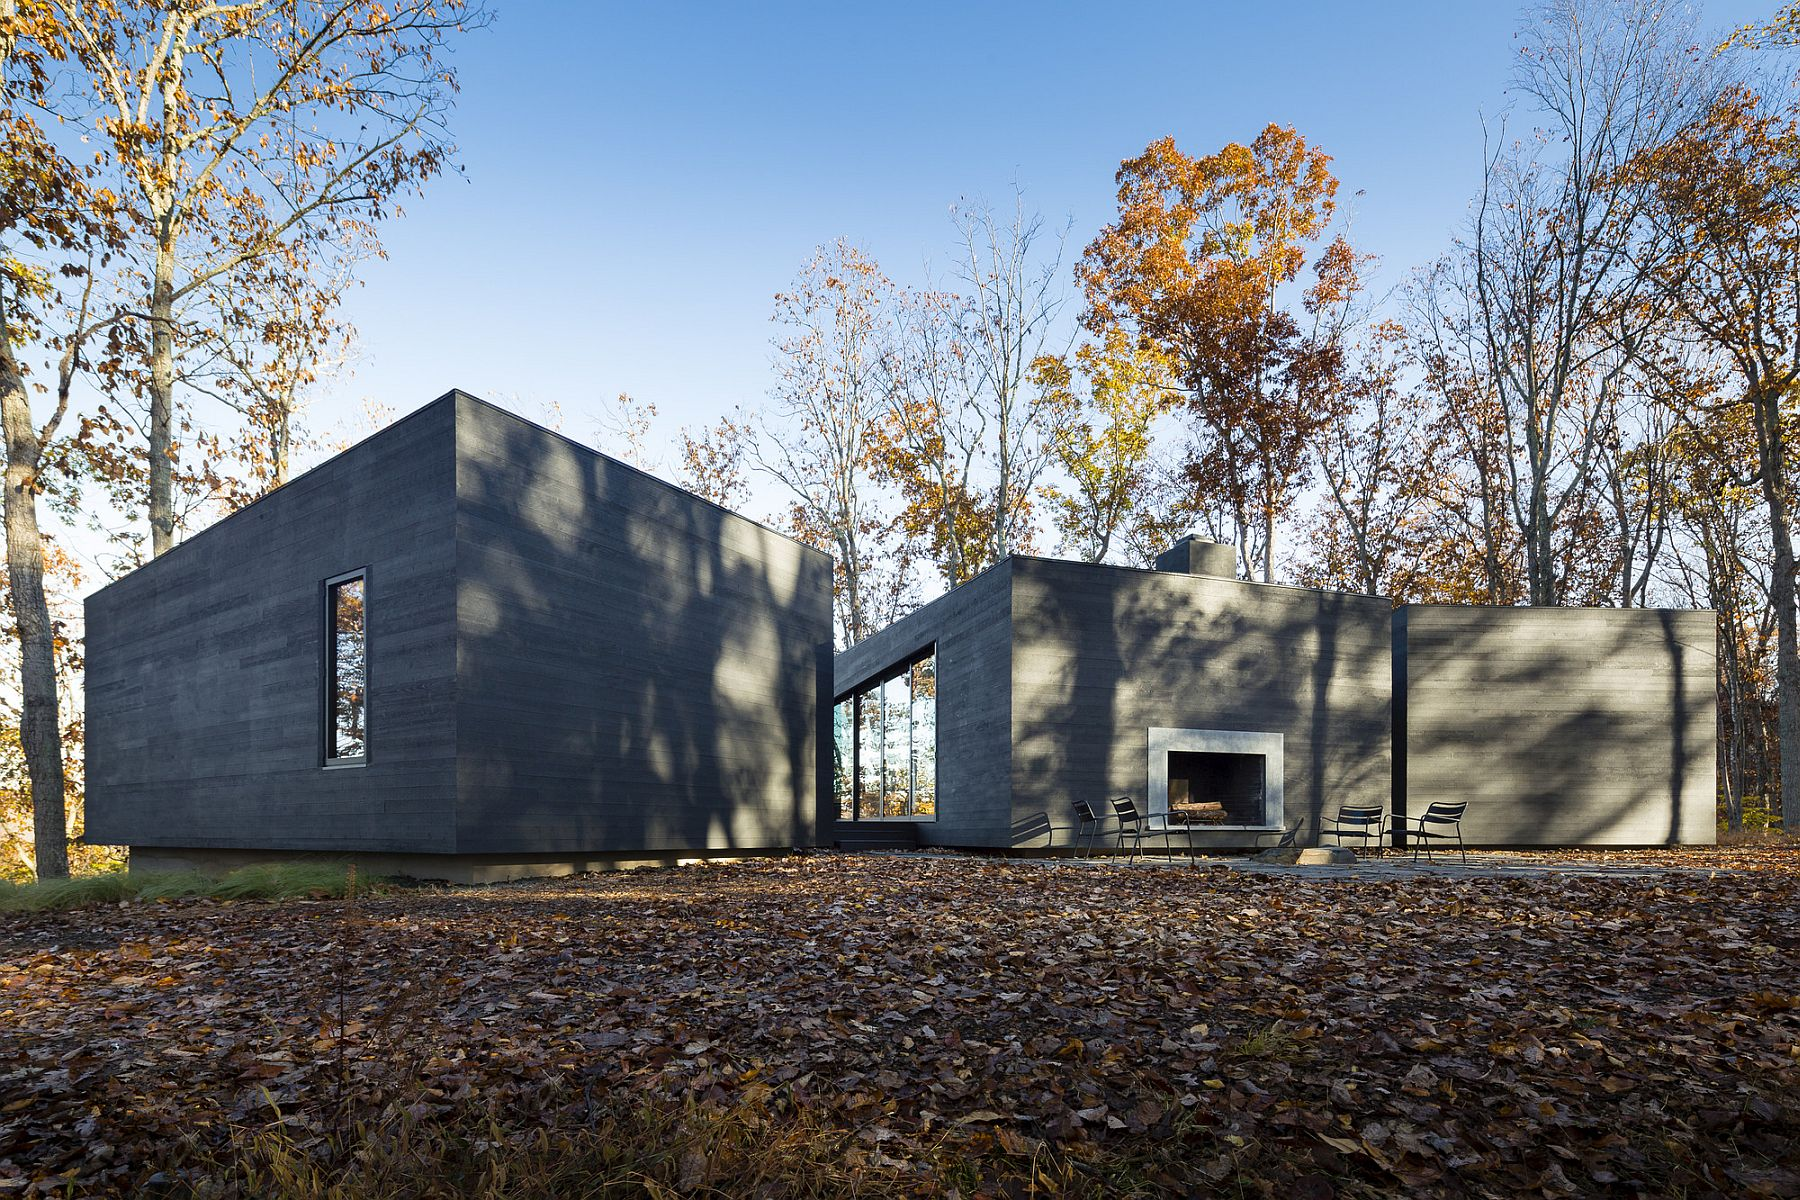 Smart design of the home connects it with nature even while offering ample privacy